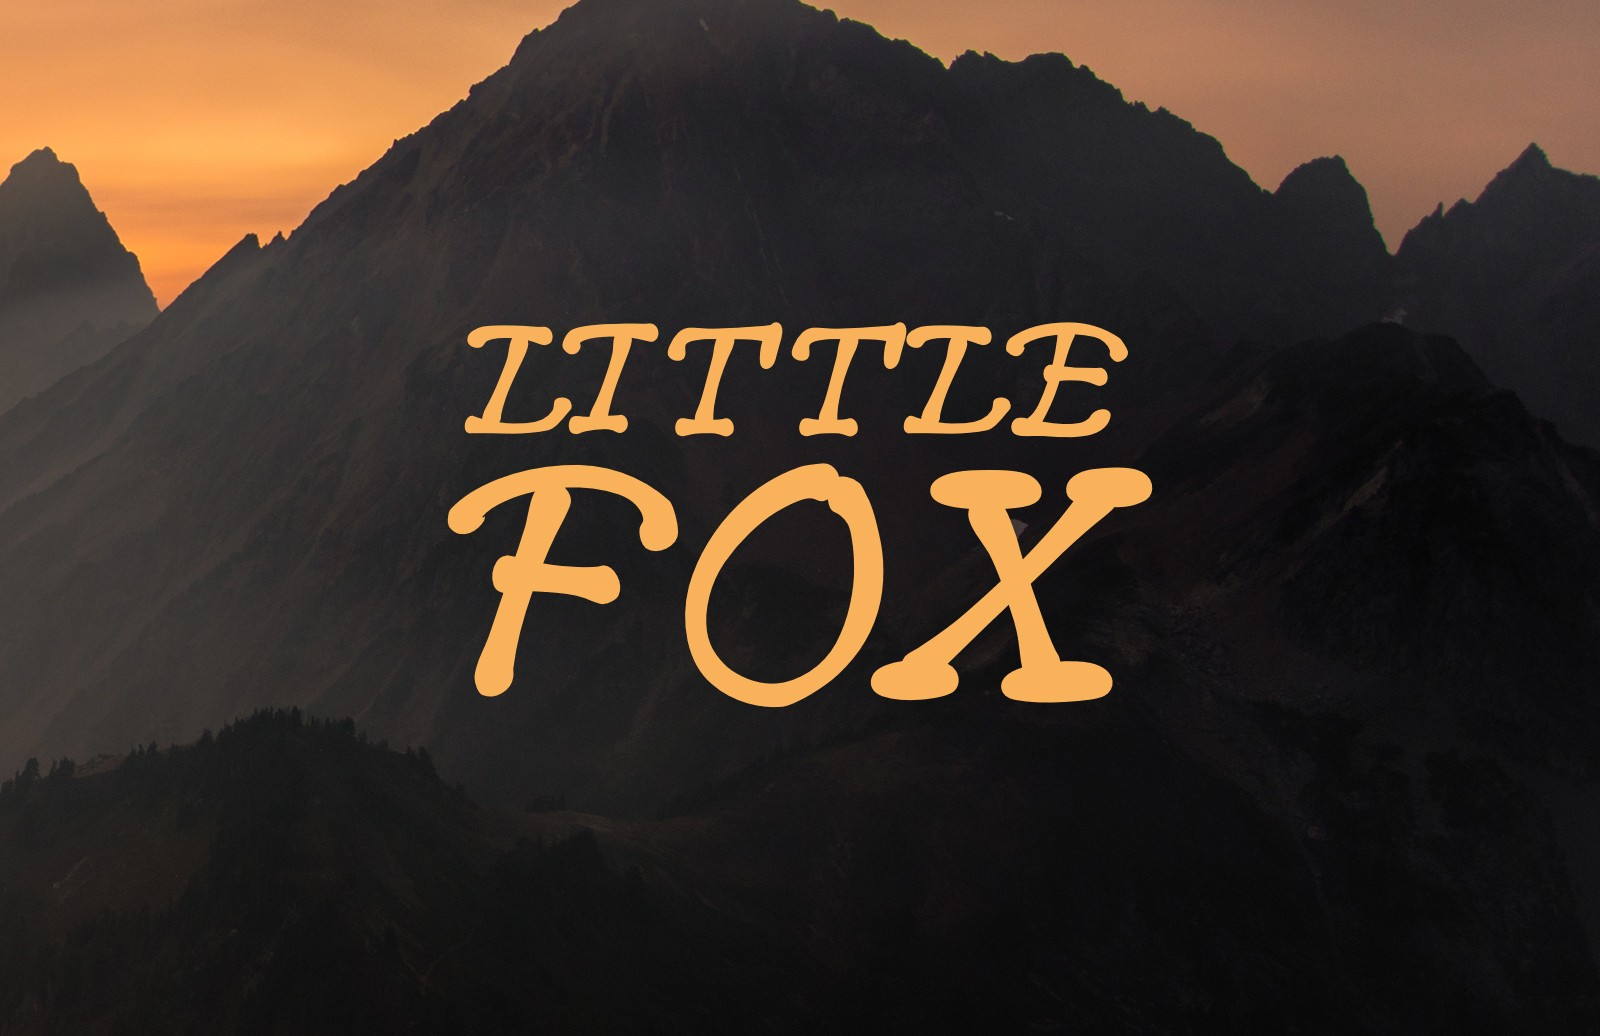 Little Fox - Hand Drawn Font